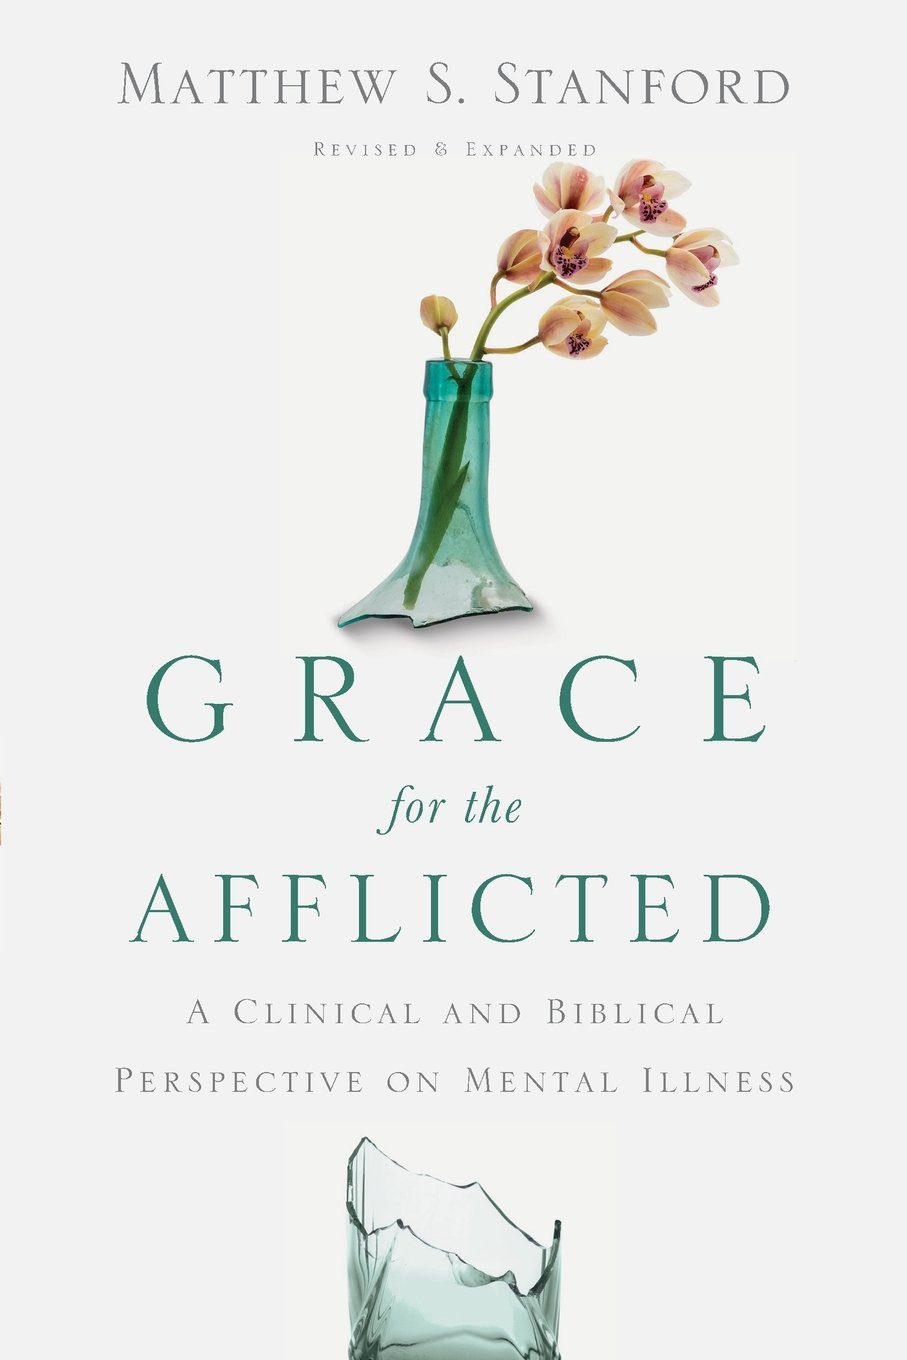 Grace for the Afflicted- A Clinical and Biblical Perspective on Mental Illness